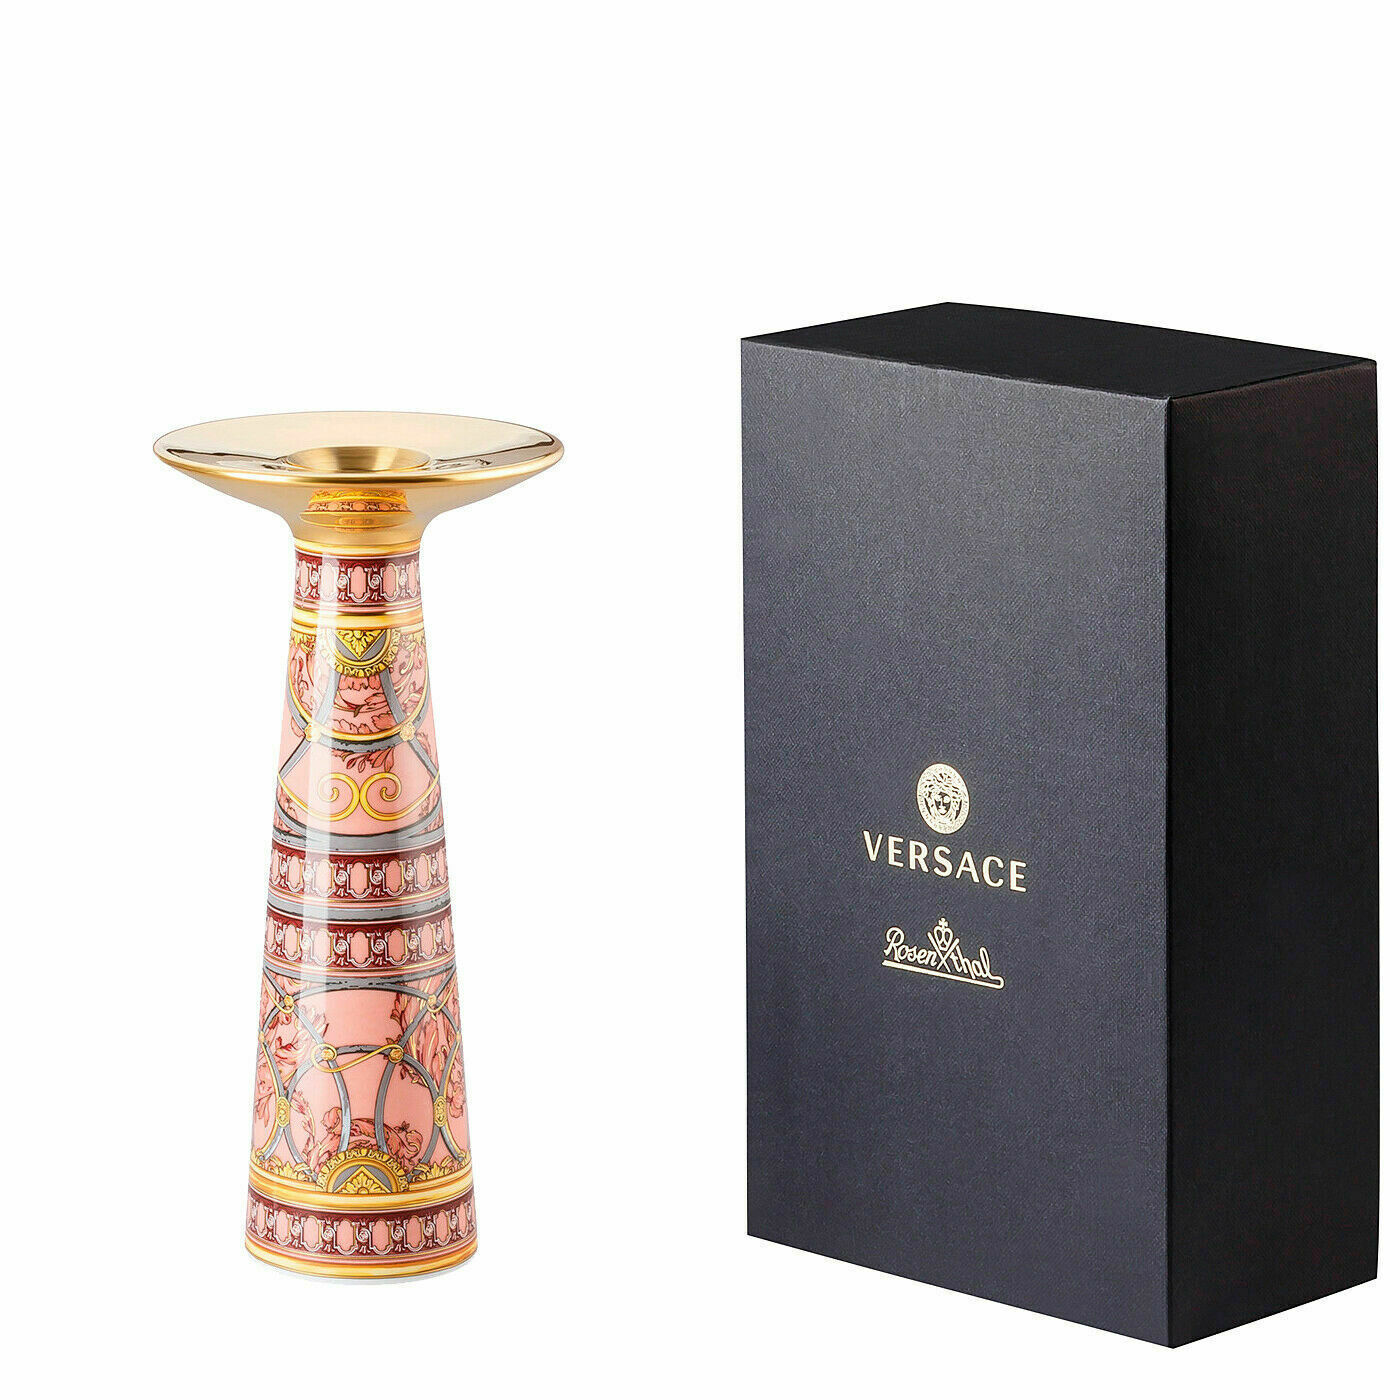 Primary image for Versace Rosenthal Porcelain Vase/Candleholder Scala Palazzo Rosa 20cm/8 Inch NEW